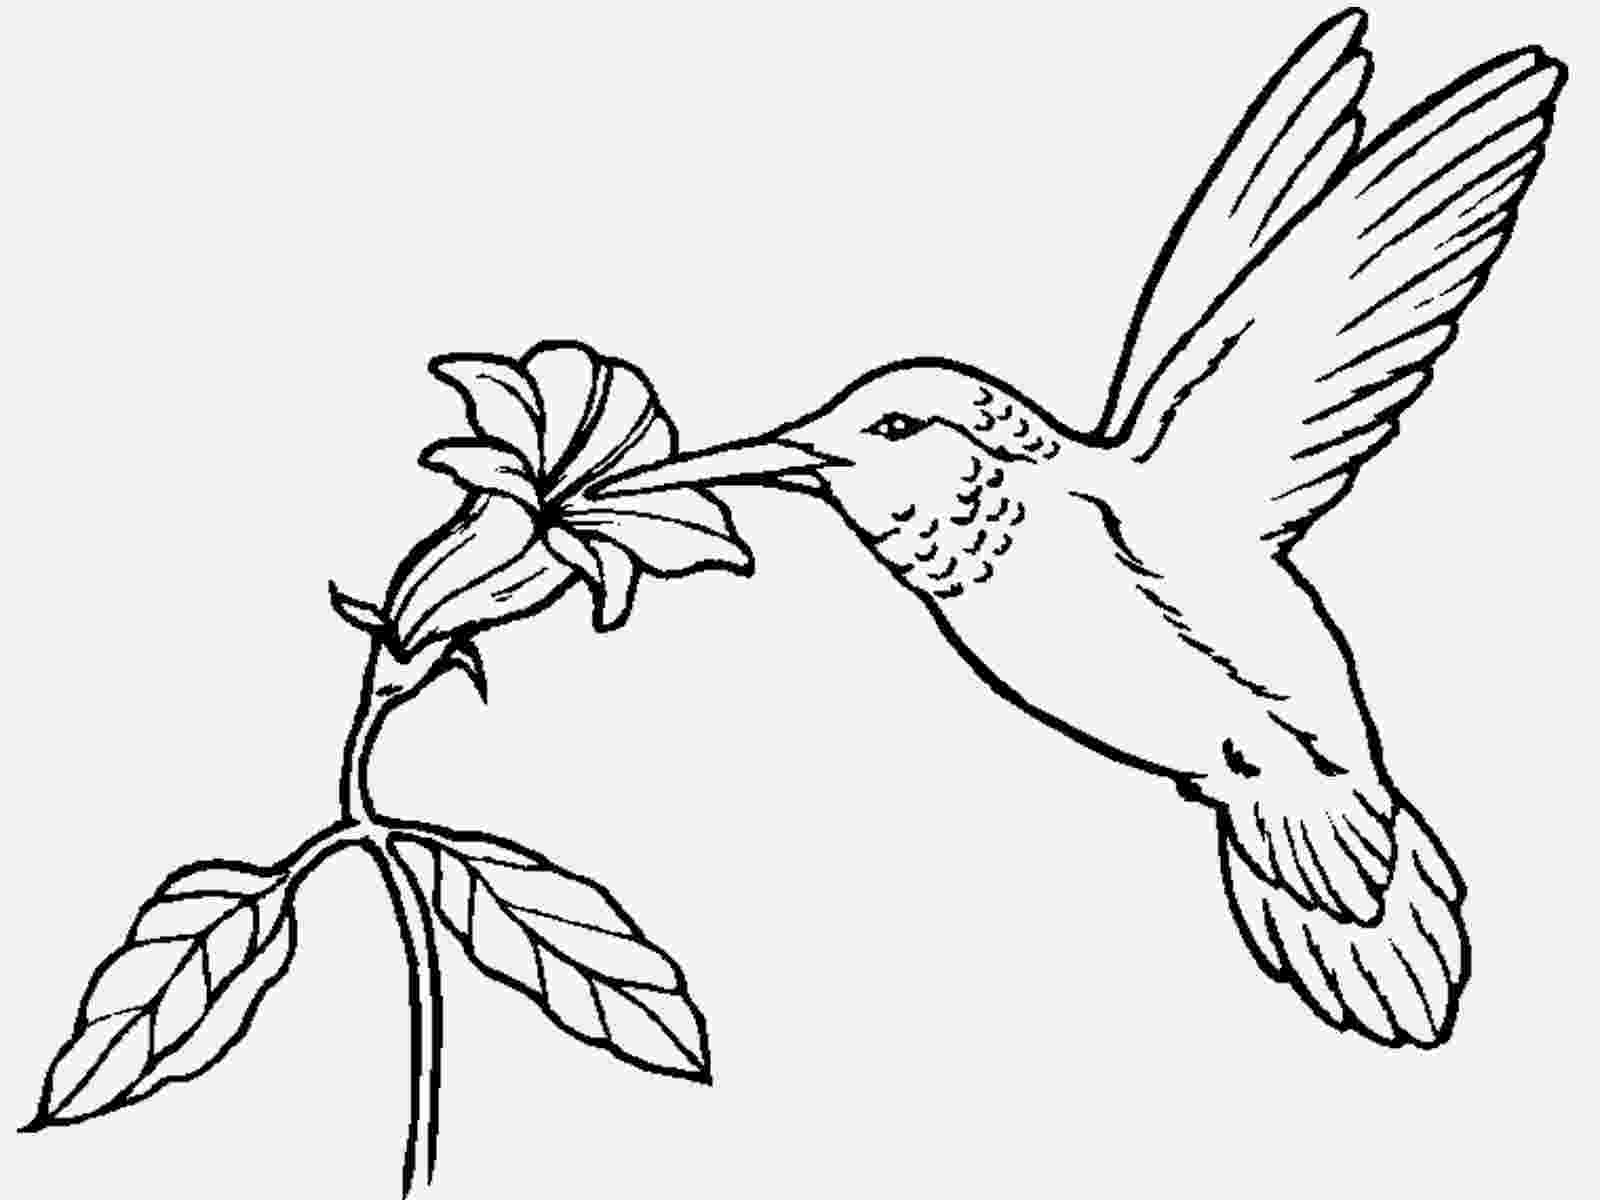 printable bird coloring pages bird coloring pages to download and print for free bird printable coloring pages